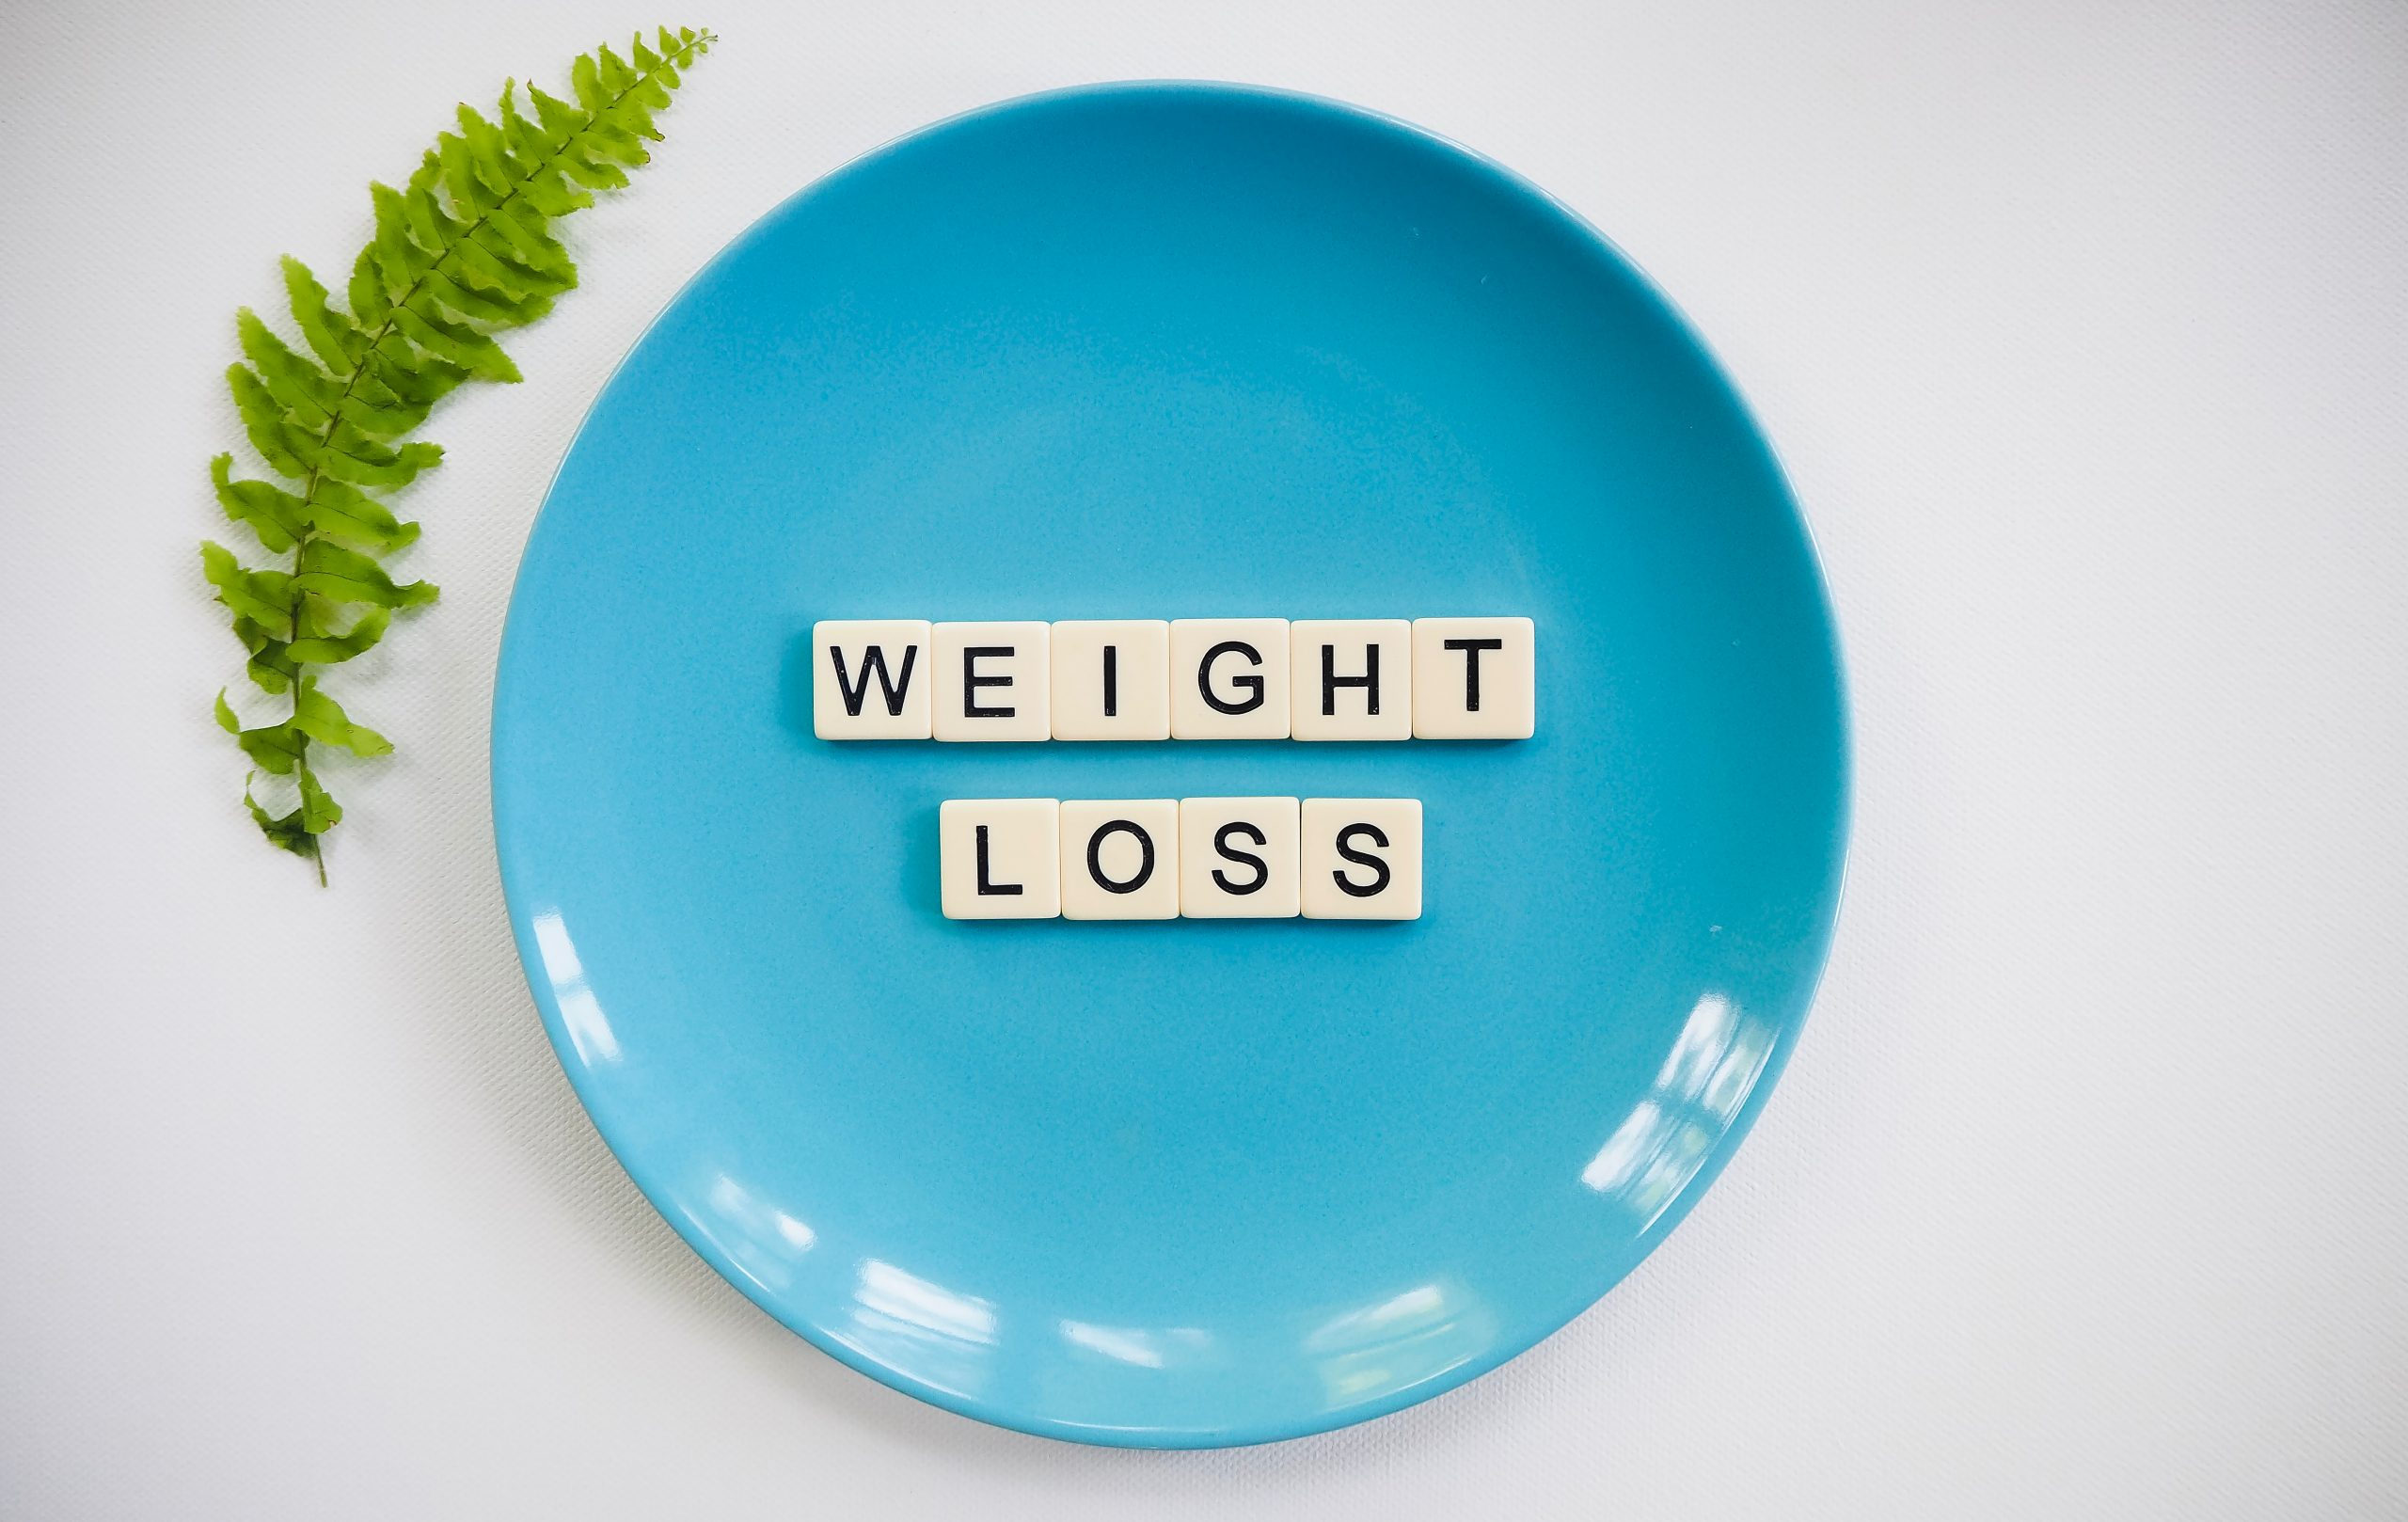 scrabble tiles spelling weight loss on a plate